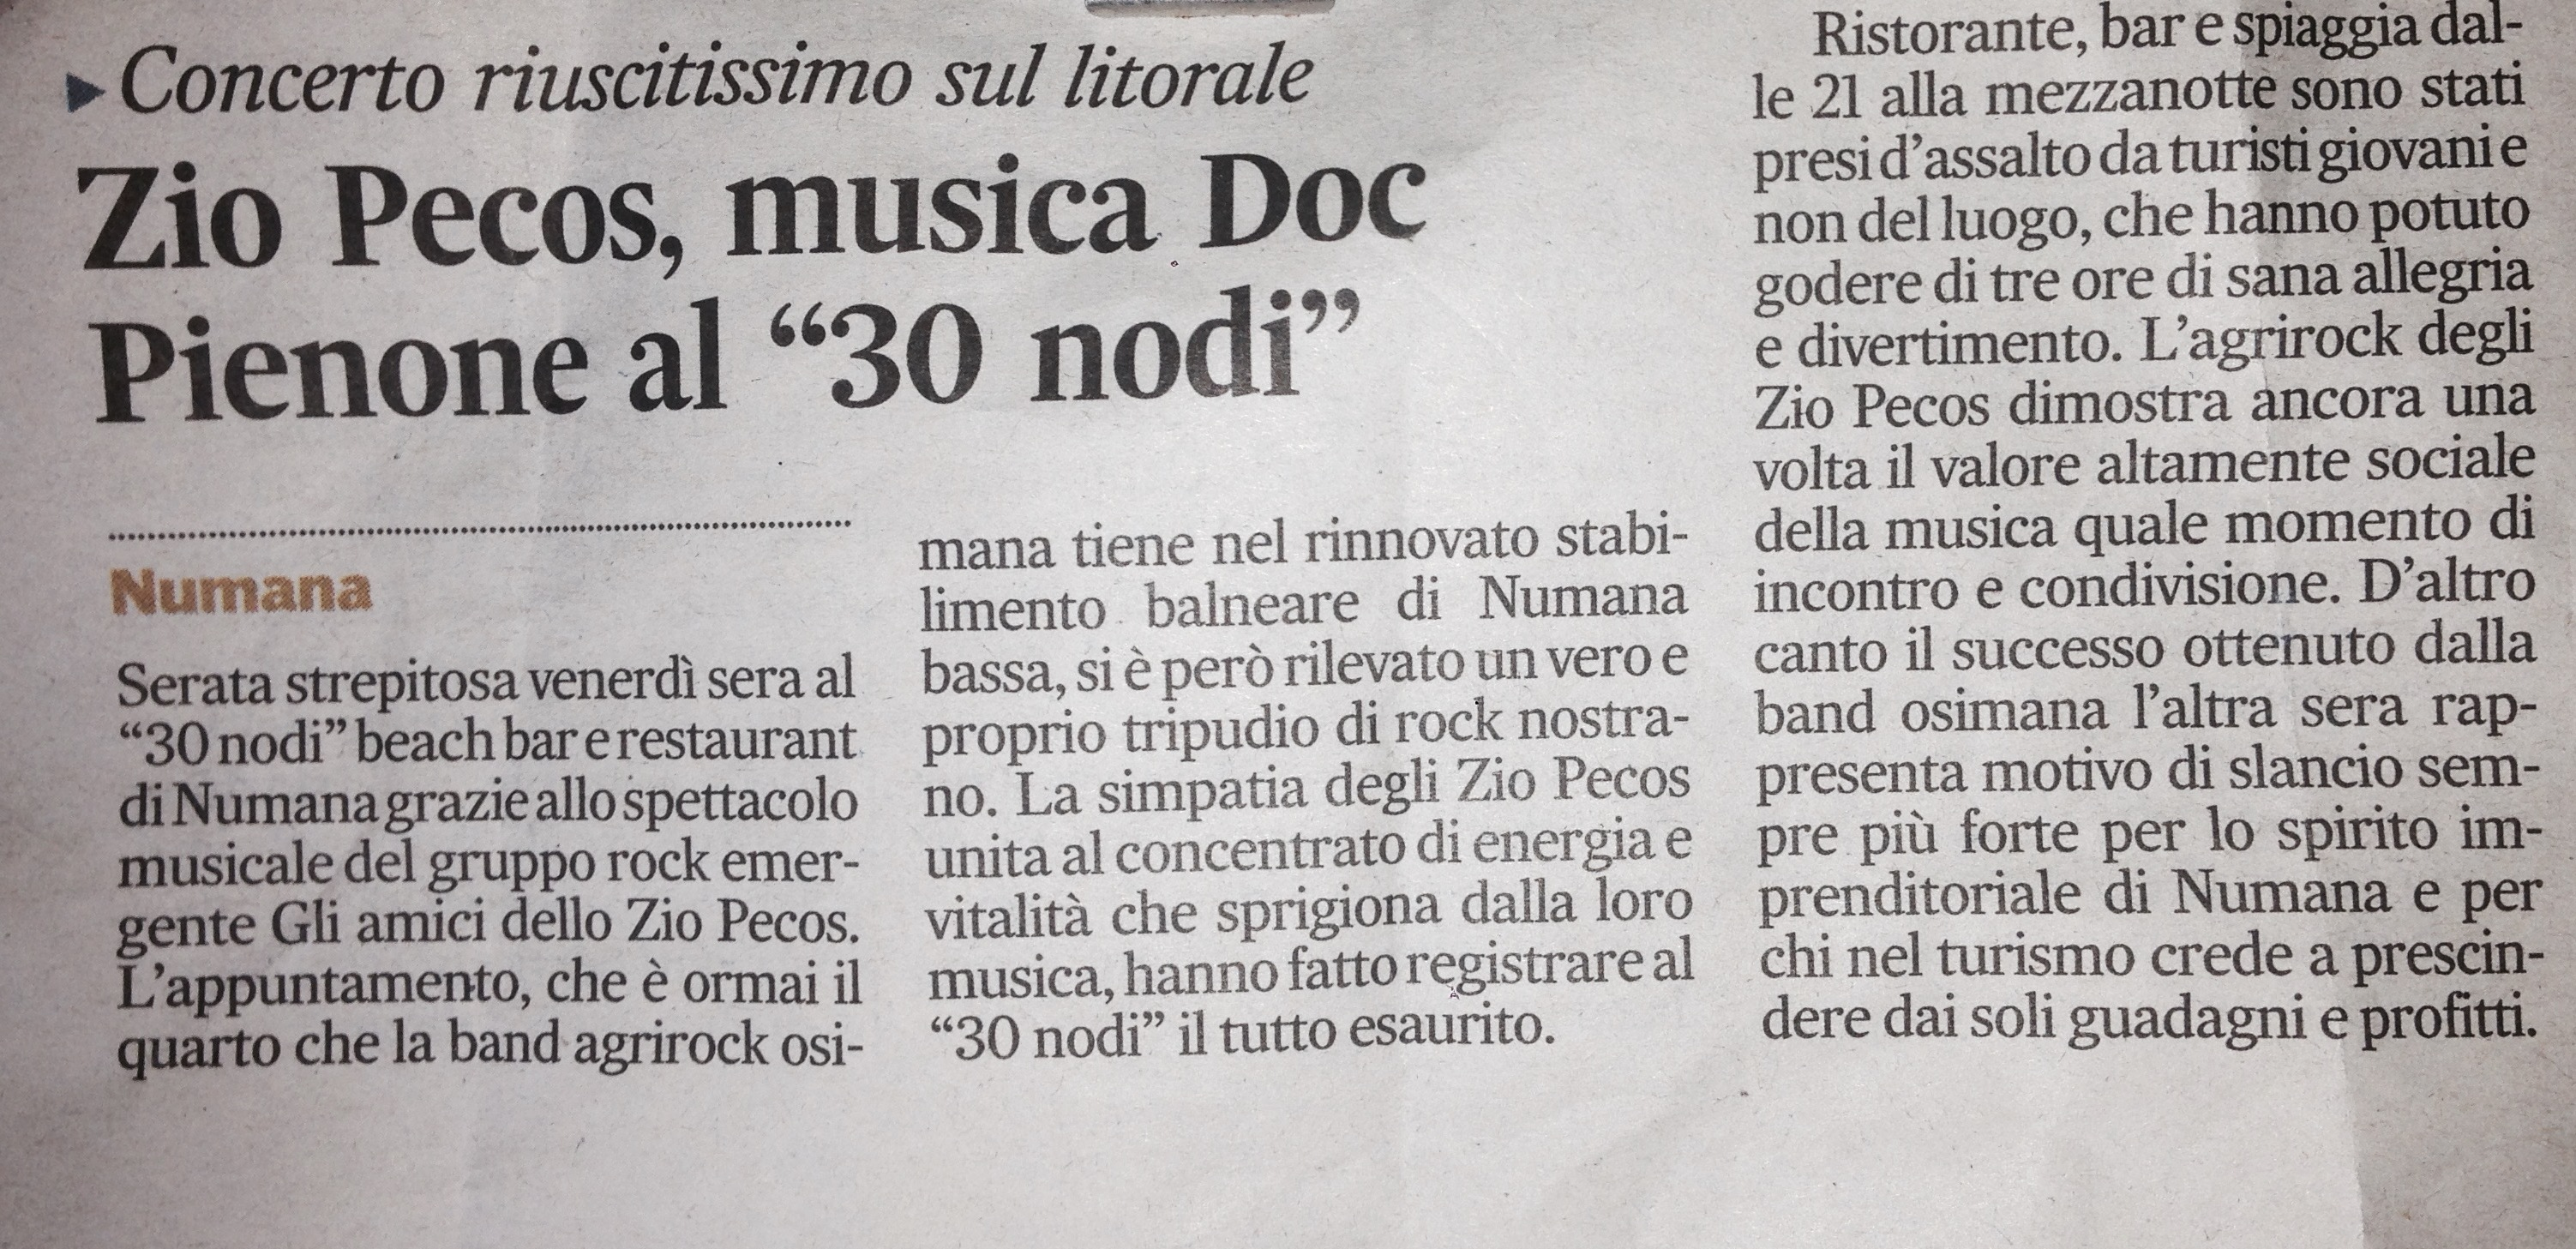 Corriere Adriatico – SOLD-OUT